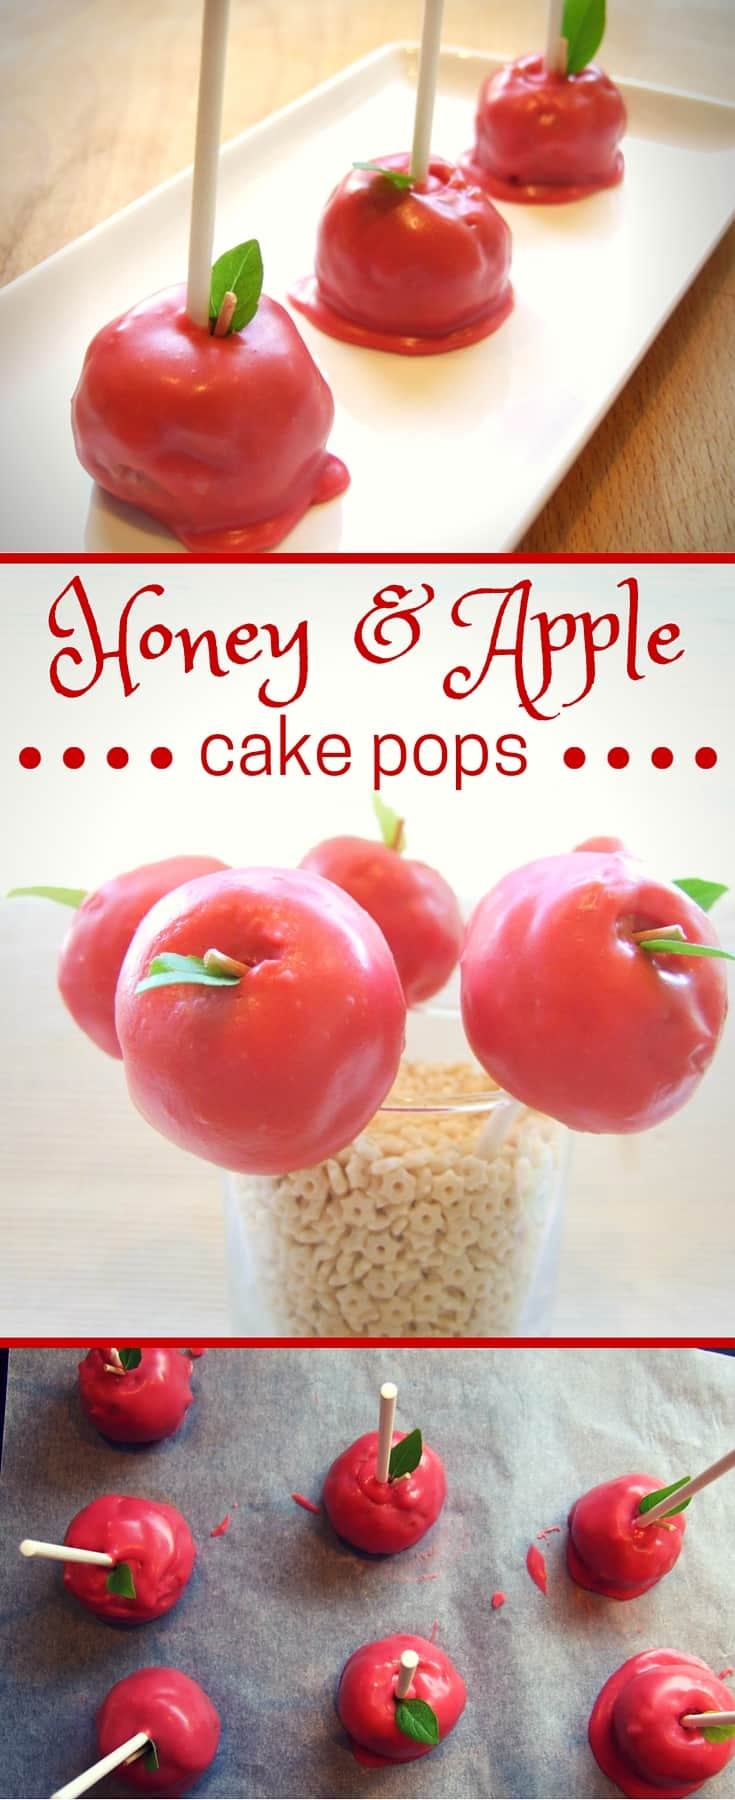 Simple, 3-ingredient, no-bake apple & honey cake pops for Rosh Hashanah! A sweet treat for the new year that both kids and adults will love.